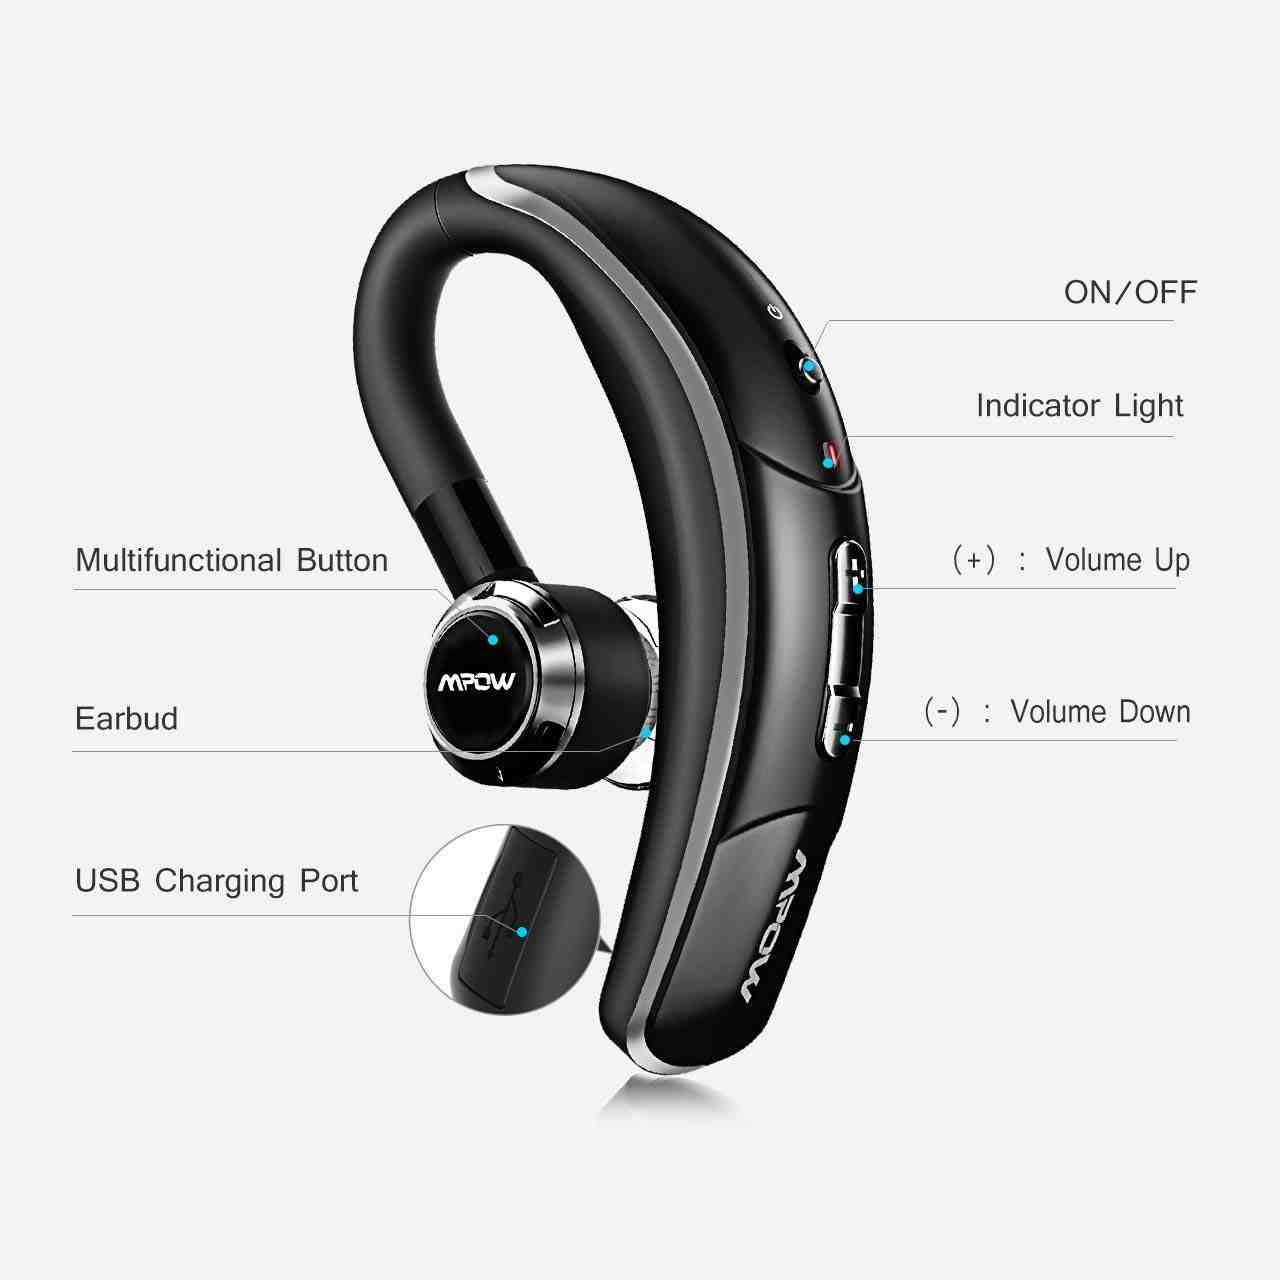 Mpow V4.1 Bluetooth Headset, Wireless Earbud Headset with Microphone, 6-Hrs Playing Time Cell Phone Bluetooth Earpiece, Car Bluetooth Headphones for iPhone Samsung Android